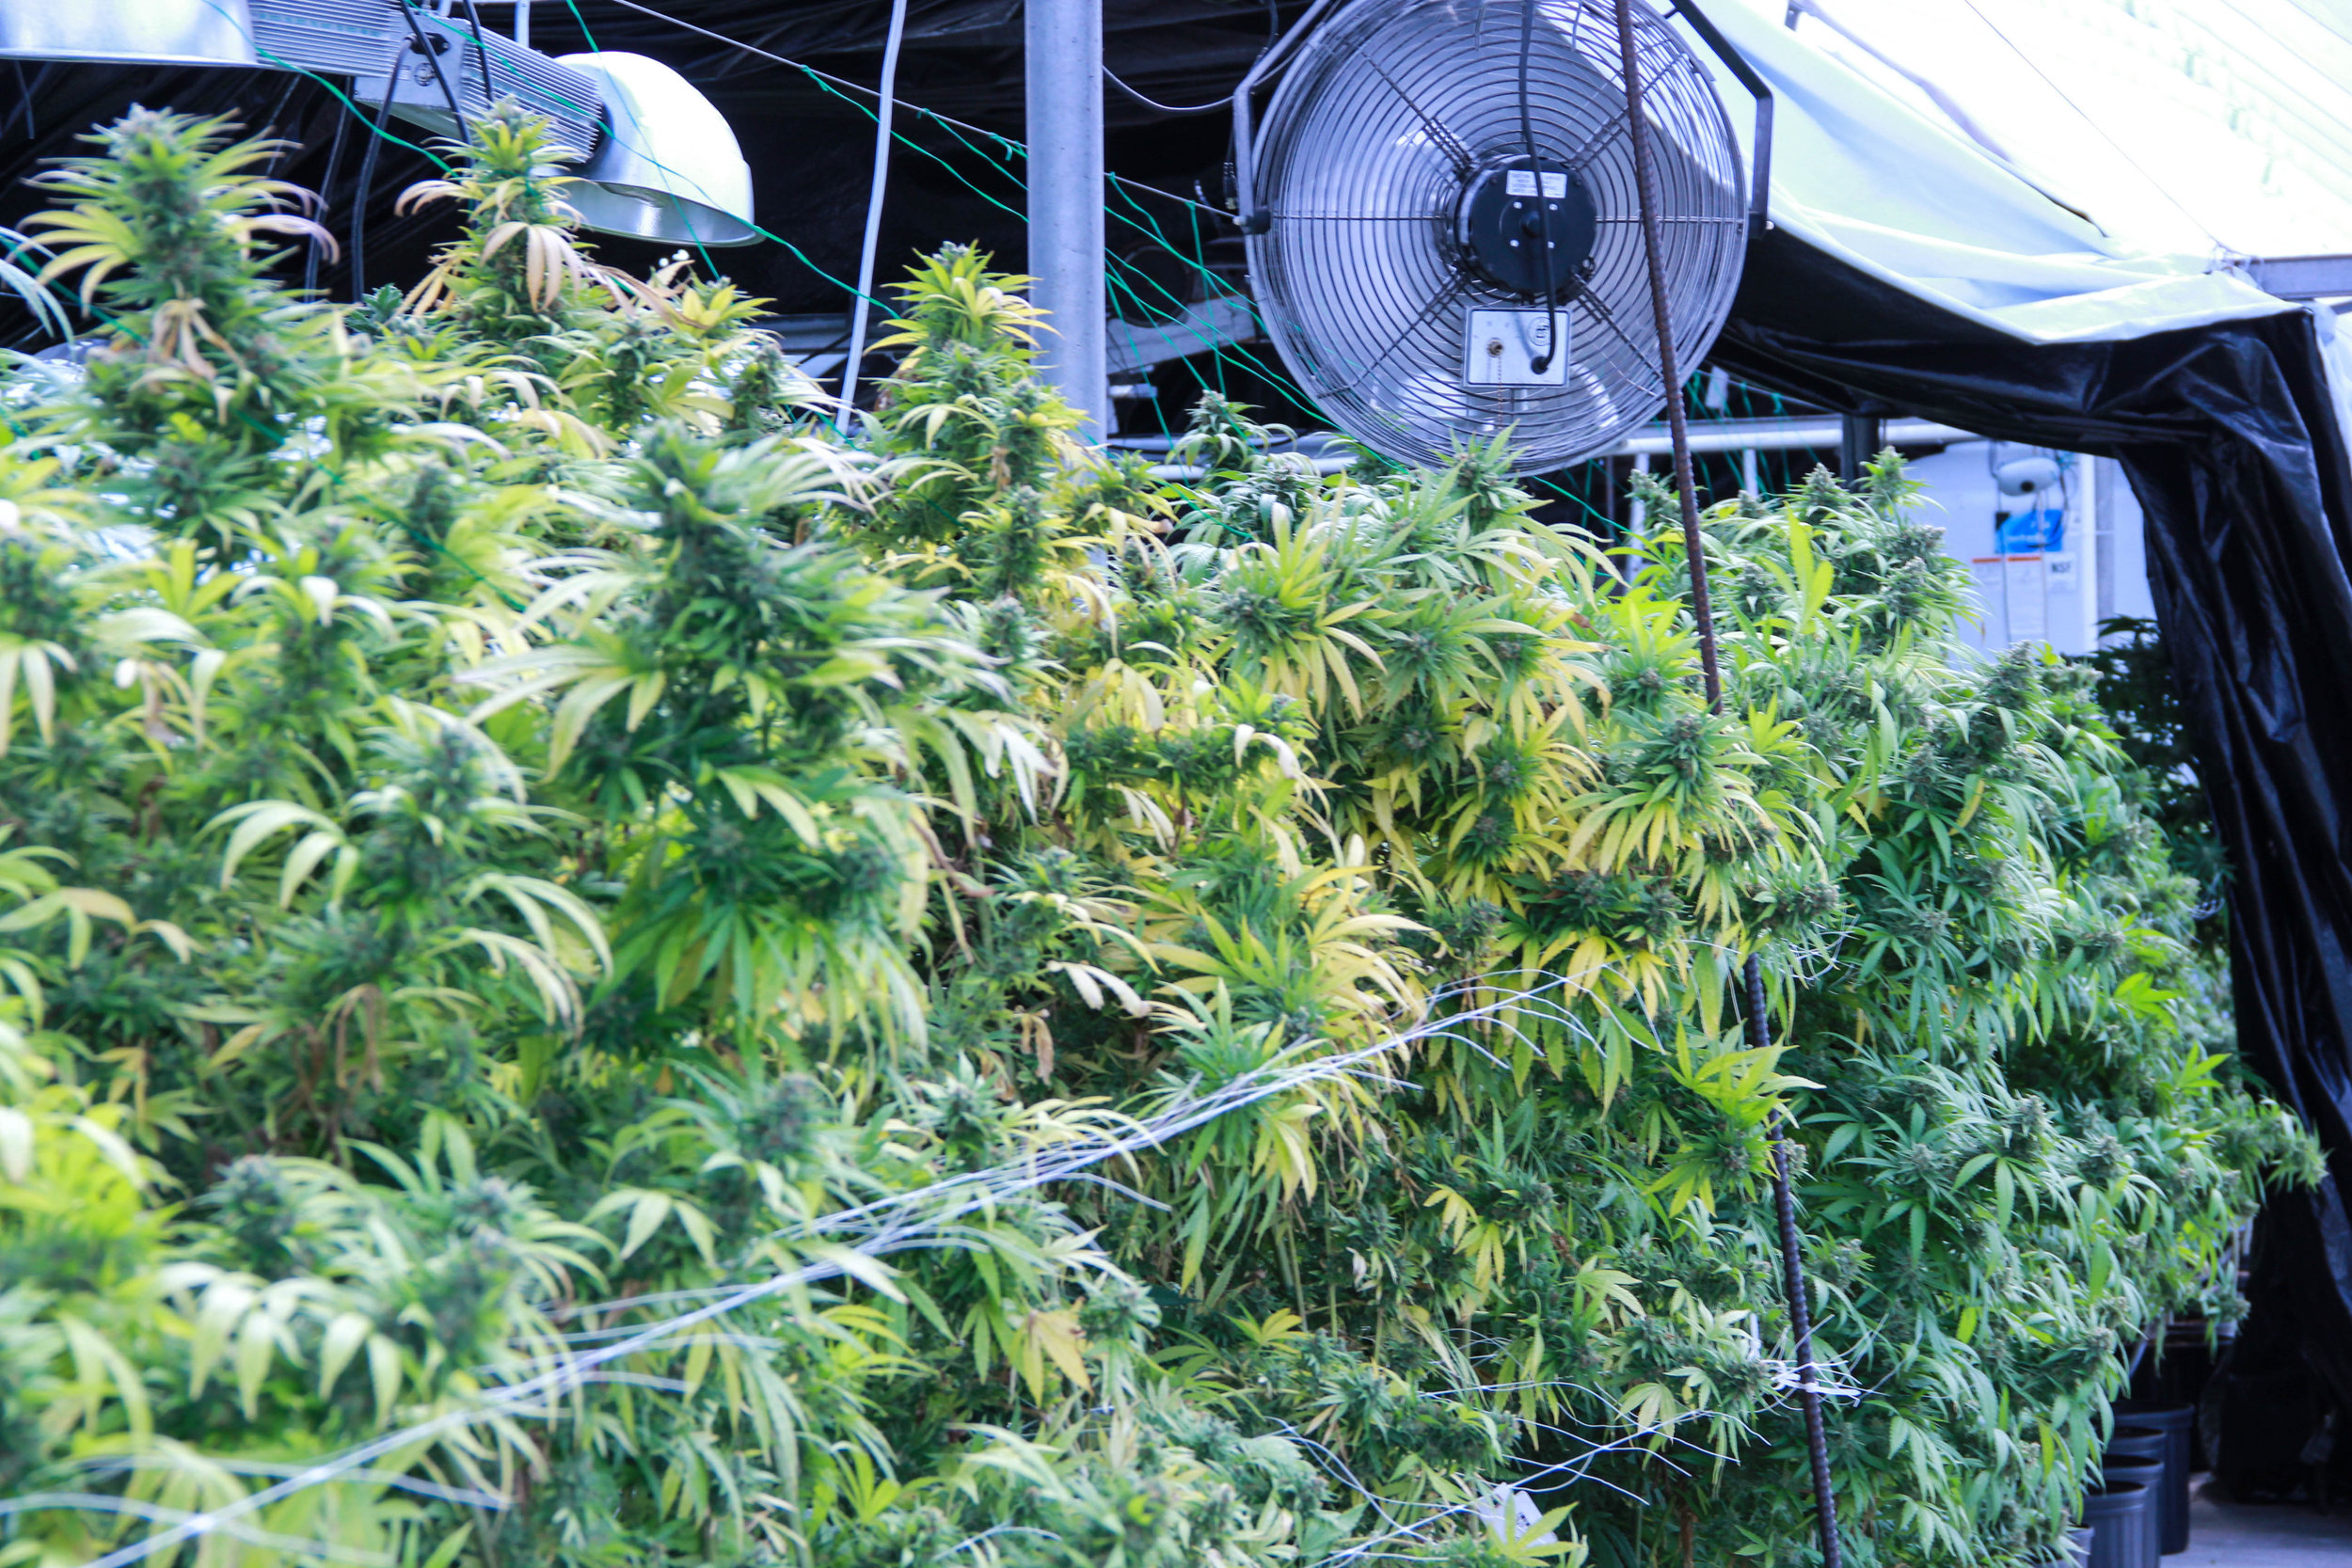 Cannabis plants growing in the Mountain High Garden greenhouse.